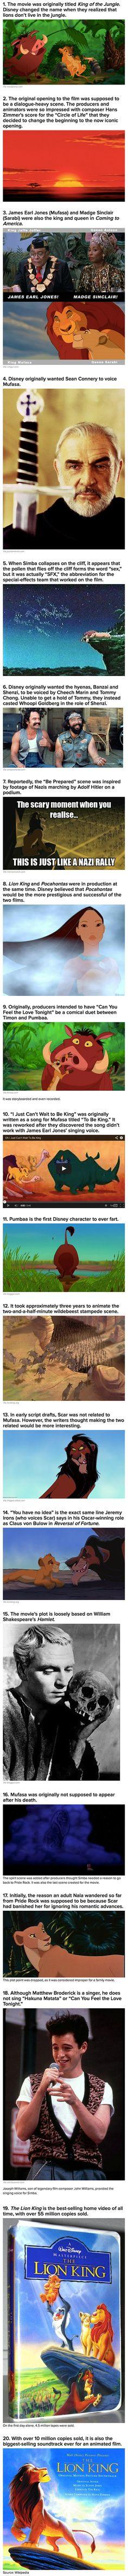 Here are some interesting things that you may not know about The Lion King.